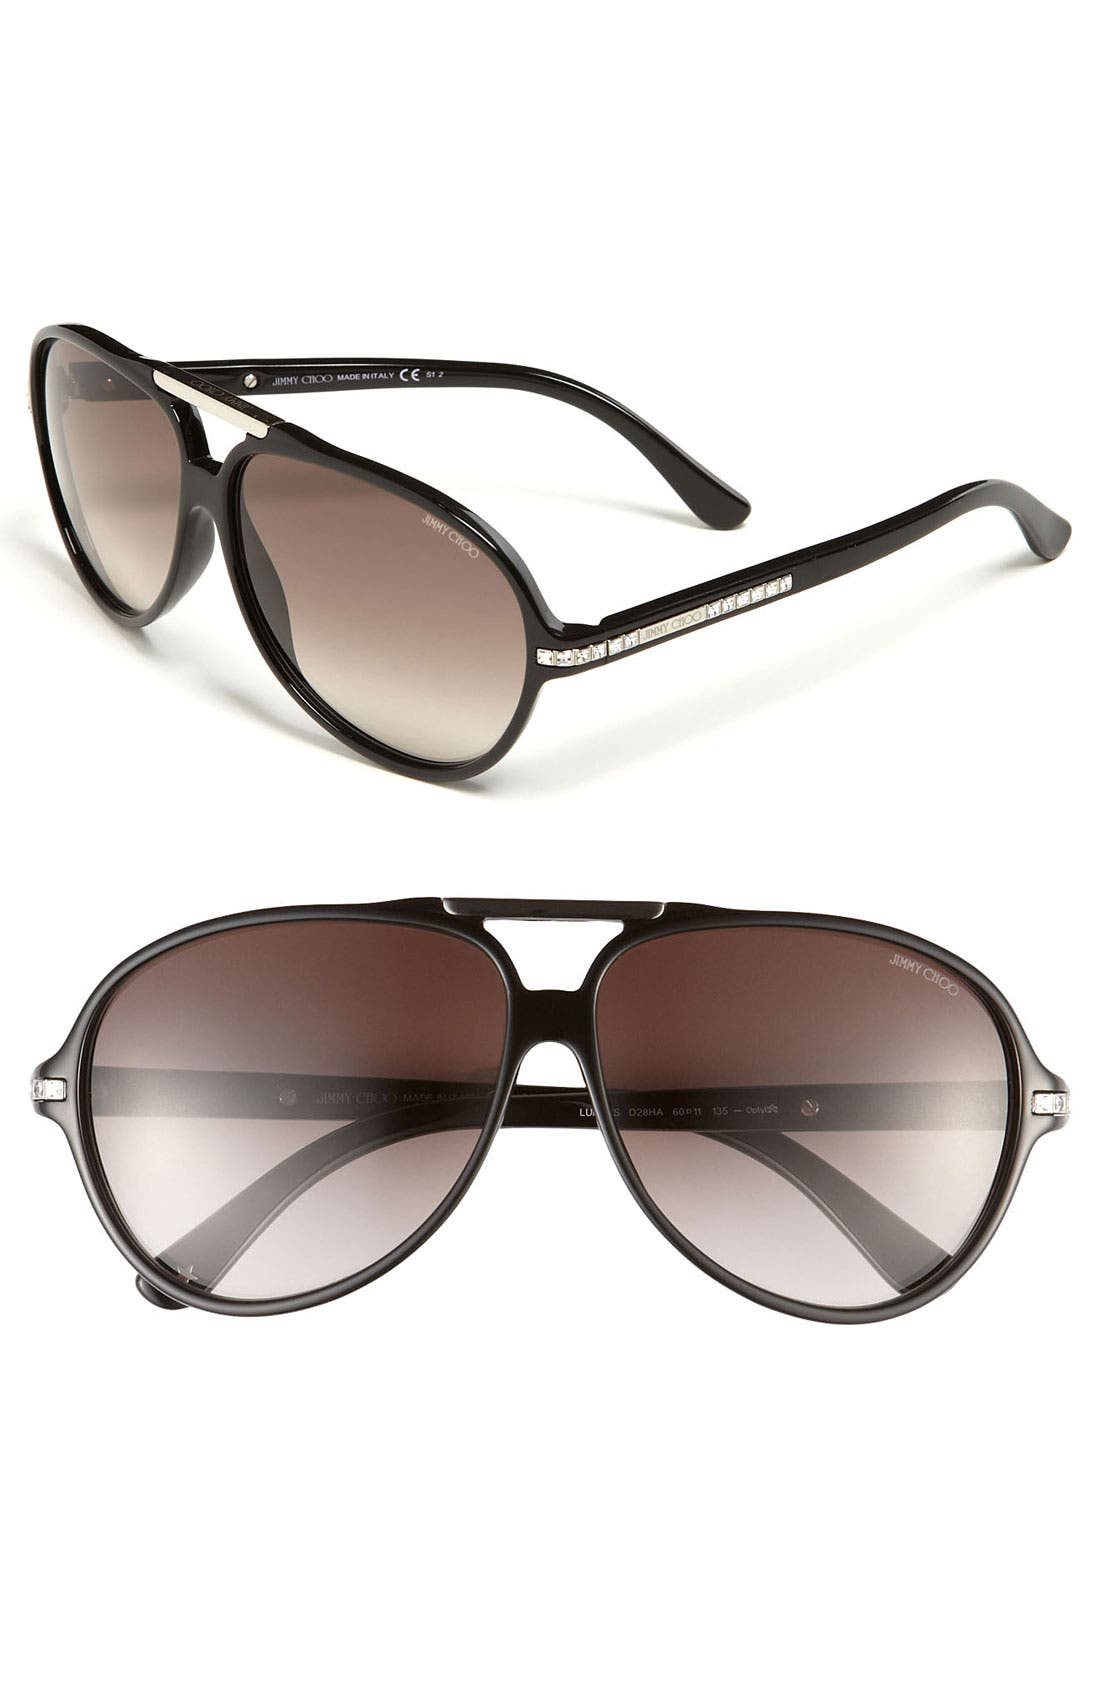 Alternate Image 1 Selected - Jimmy Choo Aviator Sunglasses